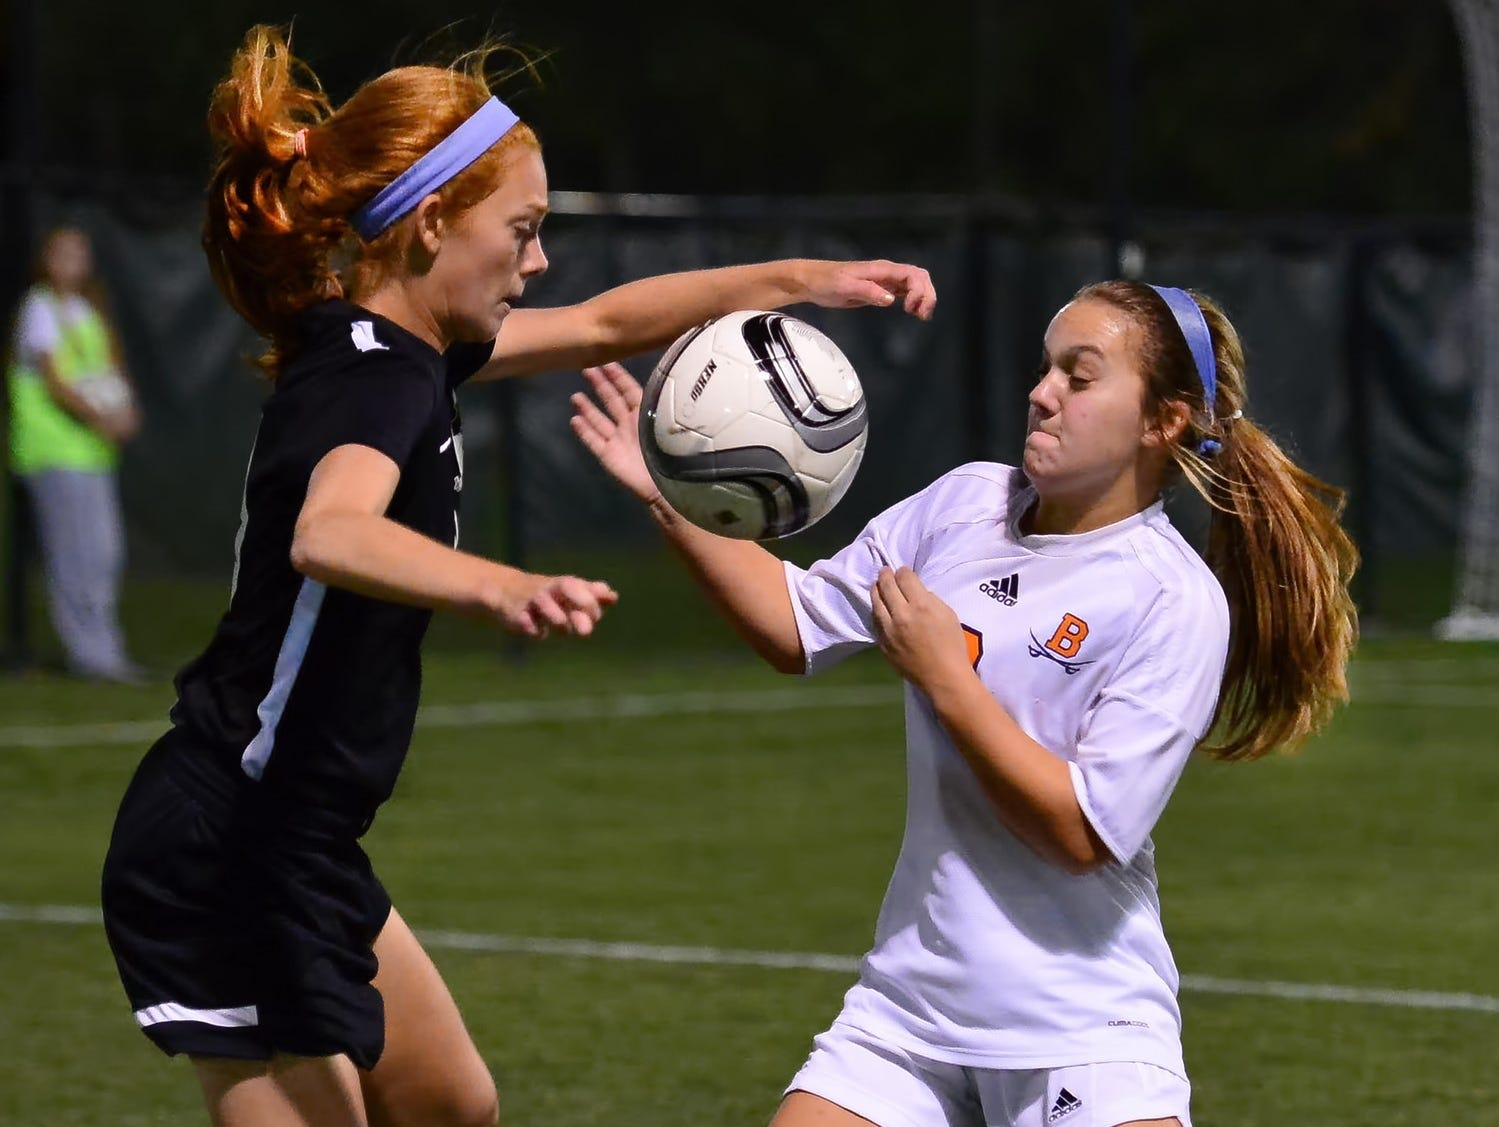 Station Camp High junior Megan Brinkley battles with Beech sophomore Natalie Lankster for possession. Brinkley scored a goal and provided an assist during the Lady Bison's 3-0 victory in Tuesday evening's District 9-AAA Tournament semifinal match.